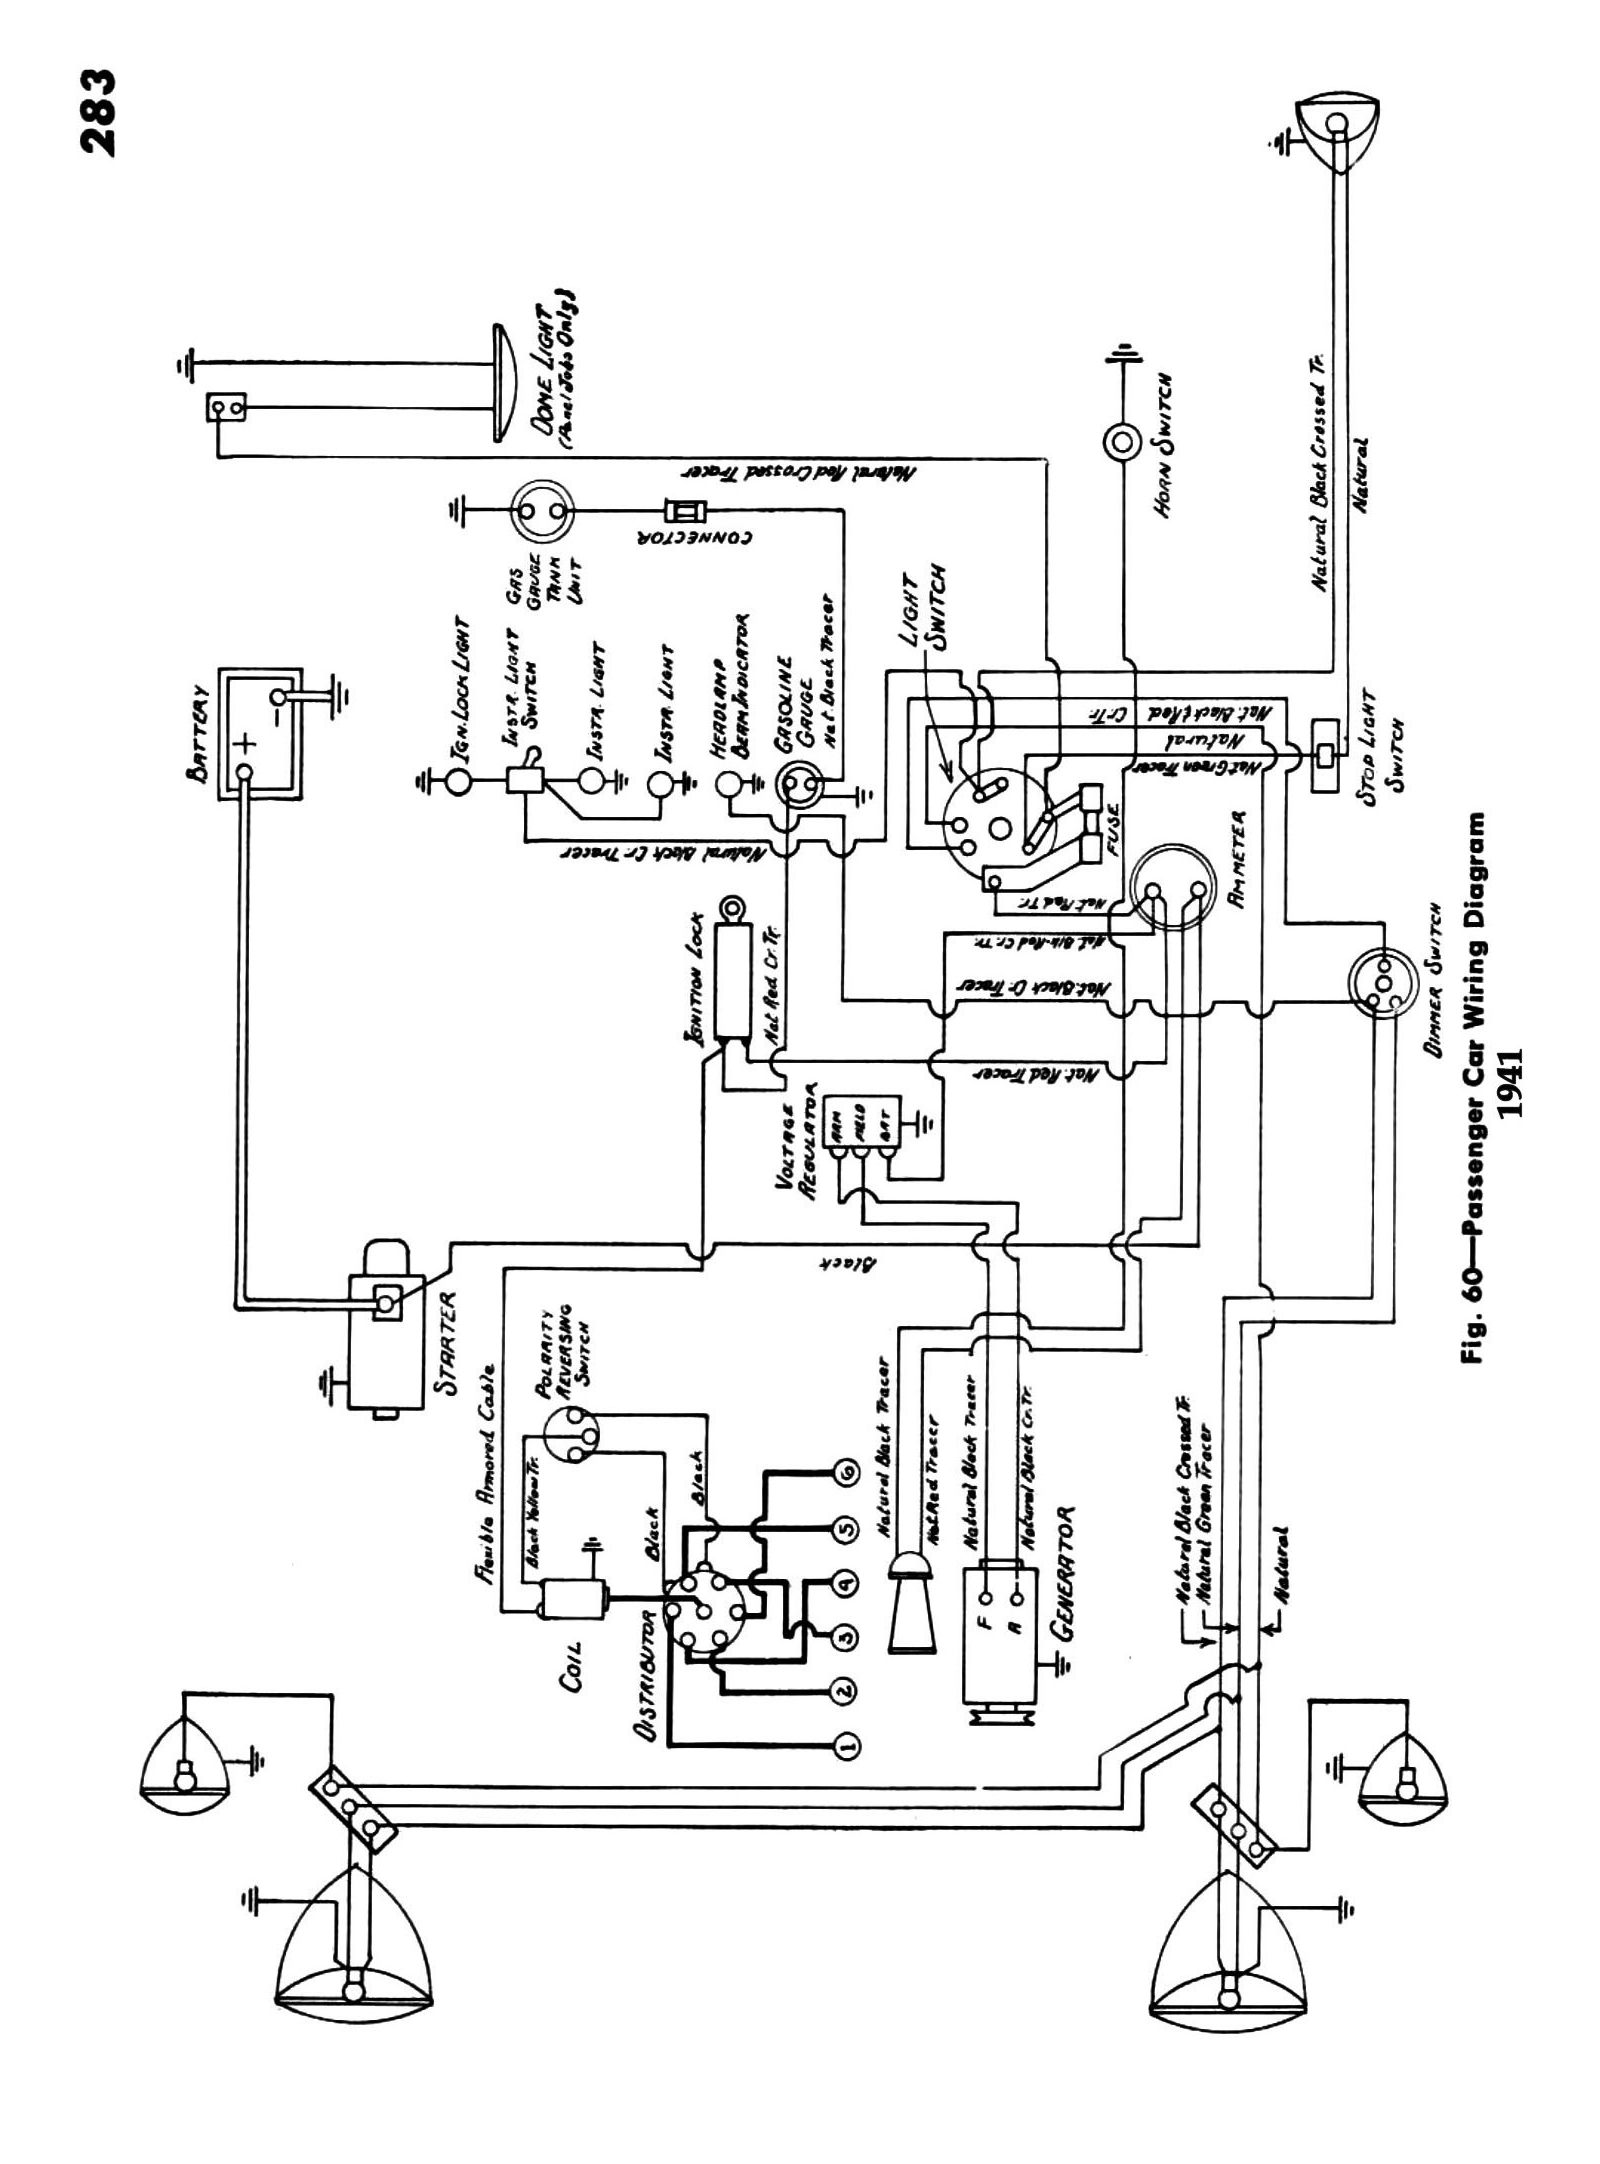 Chevy Wiring Diagrams Ignition System Diagram As Well Car Harness Together 1941 Passenger